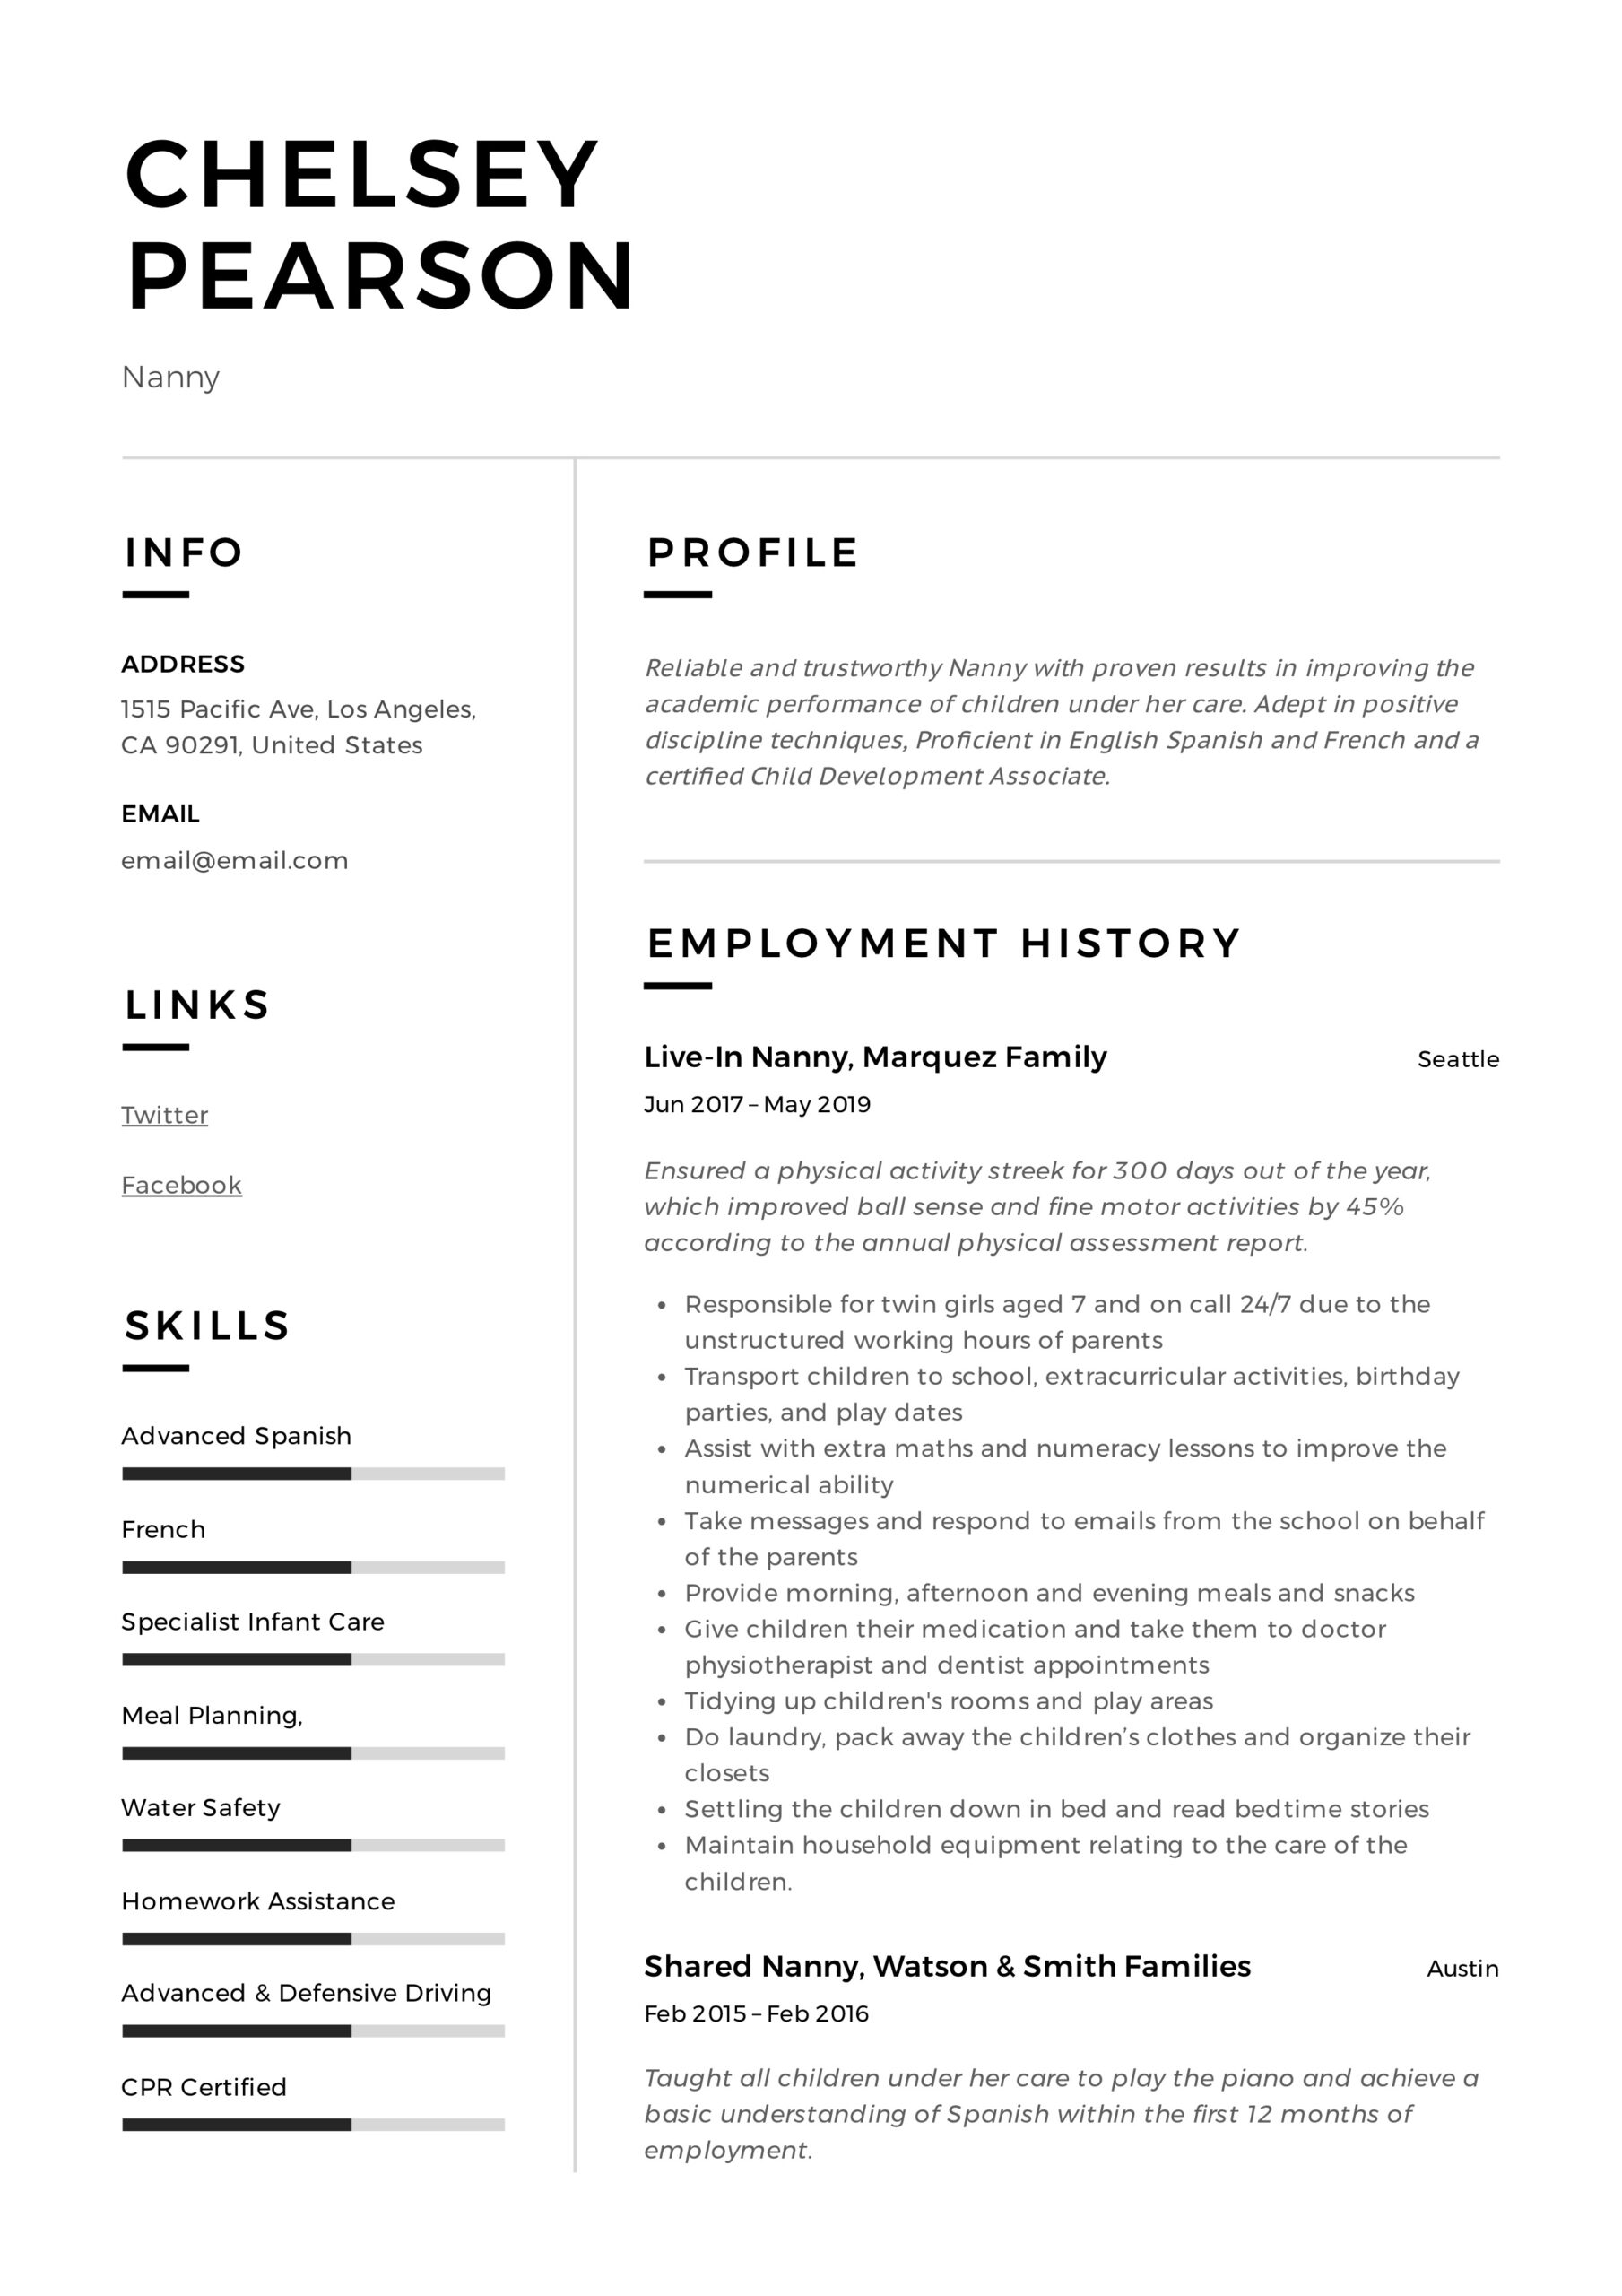 nanny resume writing guide template samples pdf free professional profile examples Resume Nanny Resume Samples Free